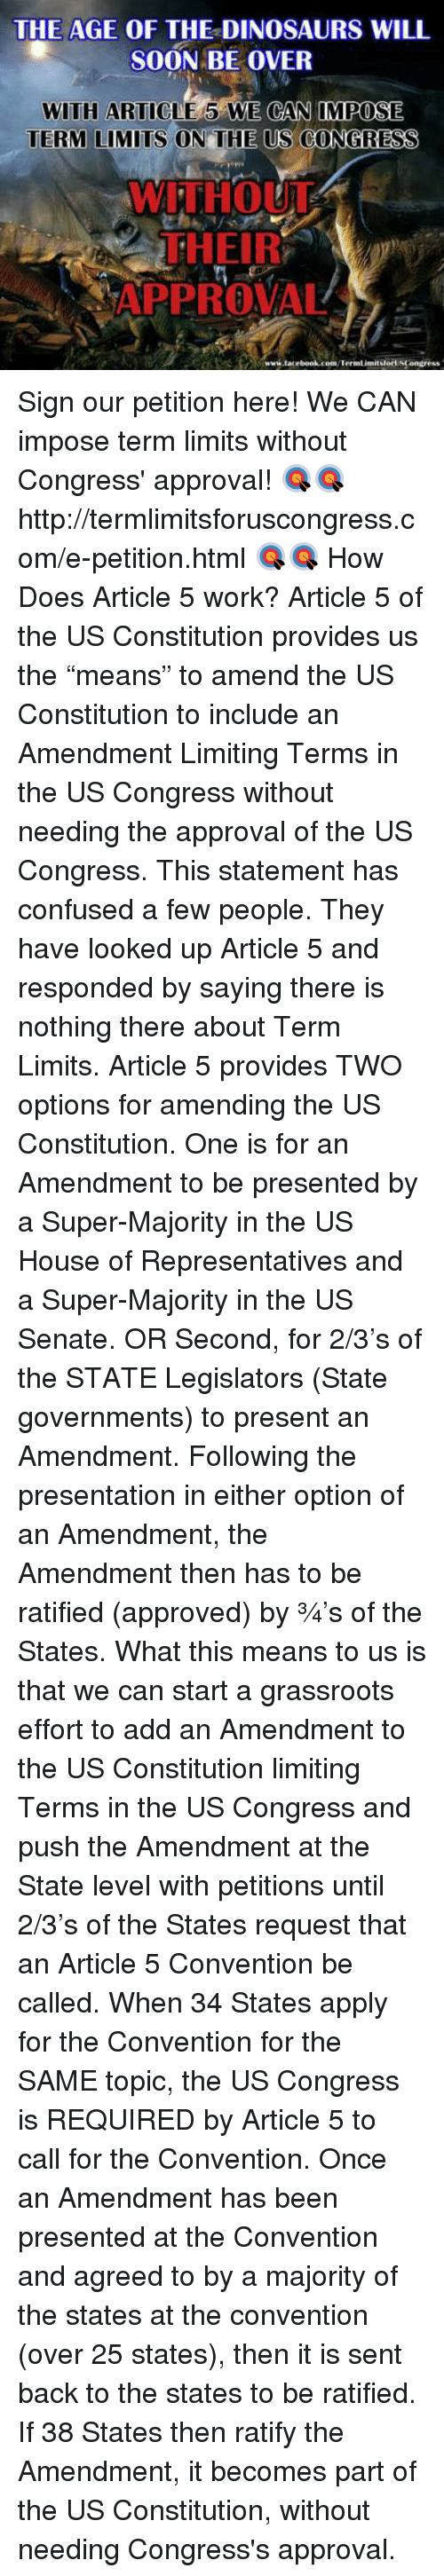 us government should have term limits for legislators (the decision didn't affect term limits for state legislatures, and there are 15 states that impose them) the court said that for term limits to be constitutional, we'd have to amend the .